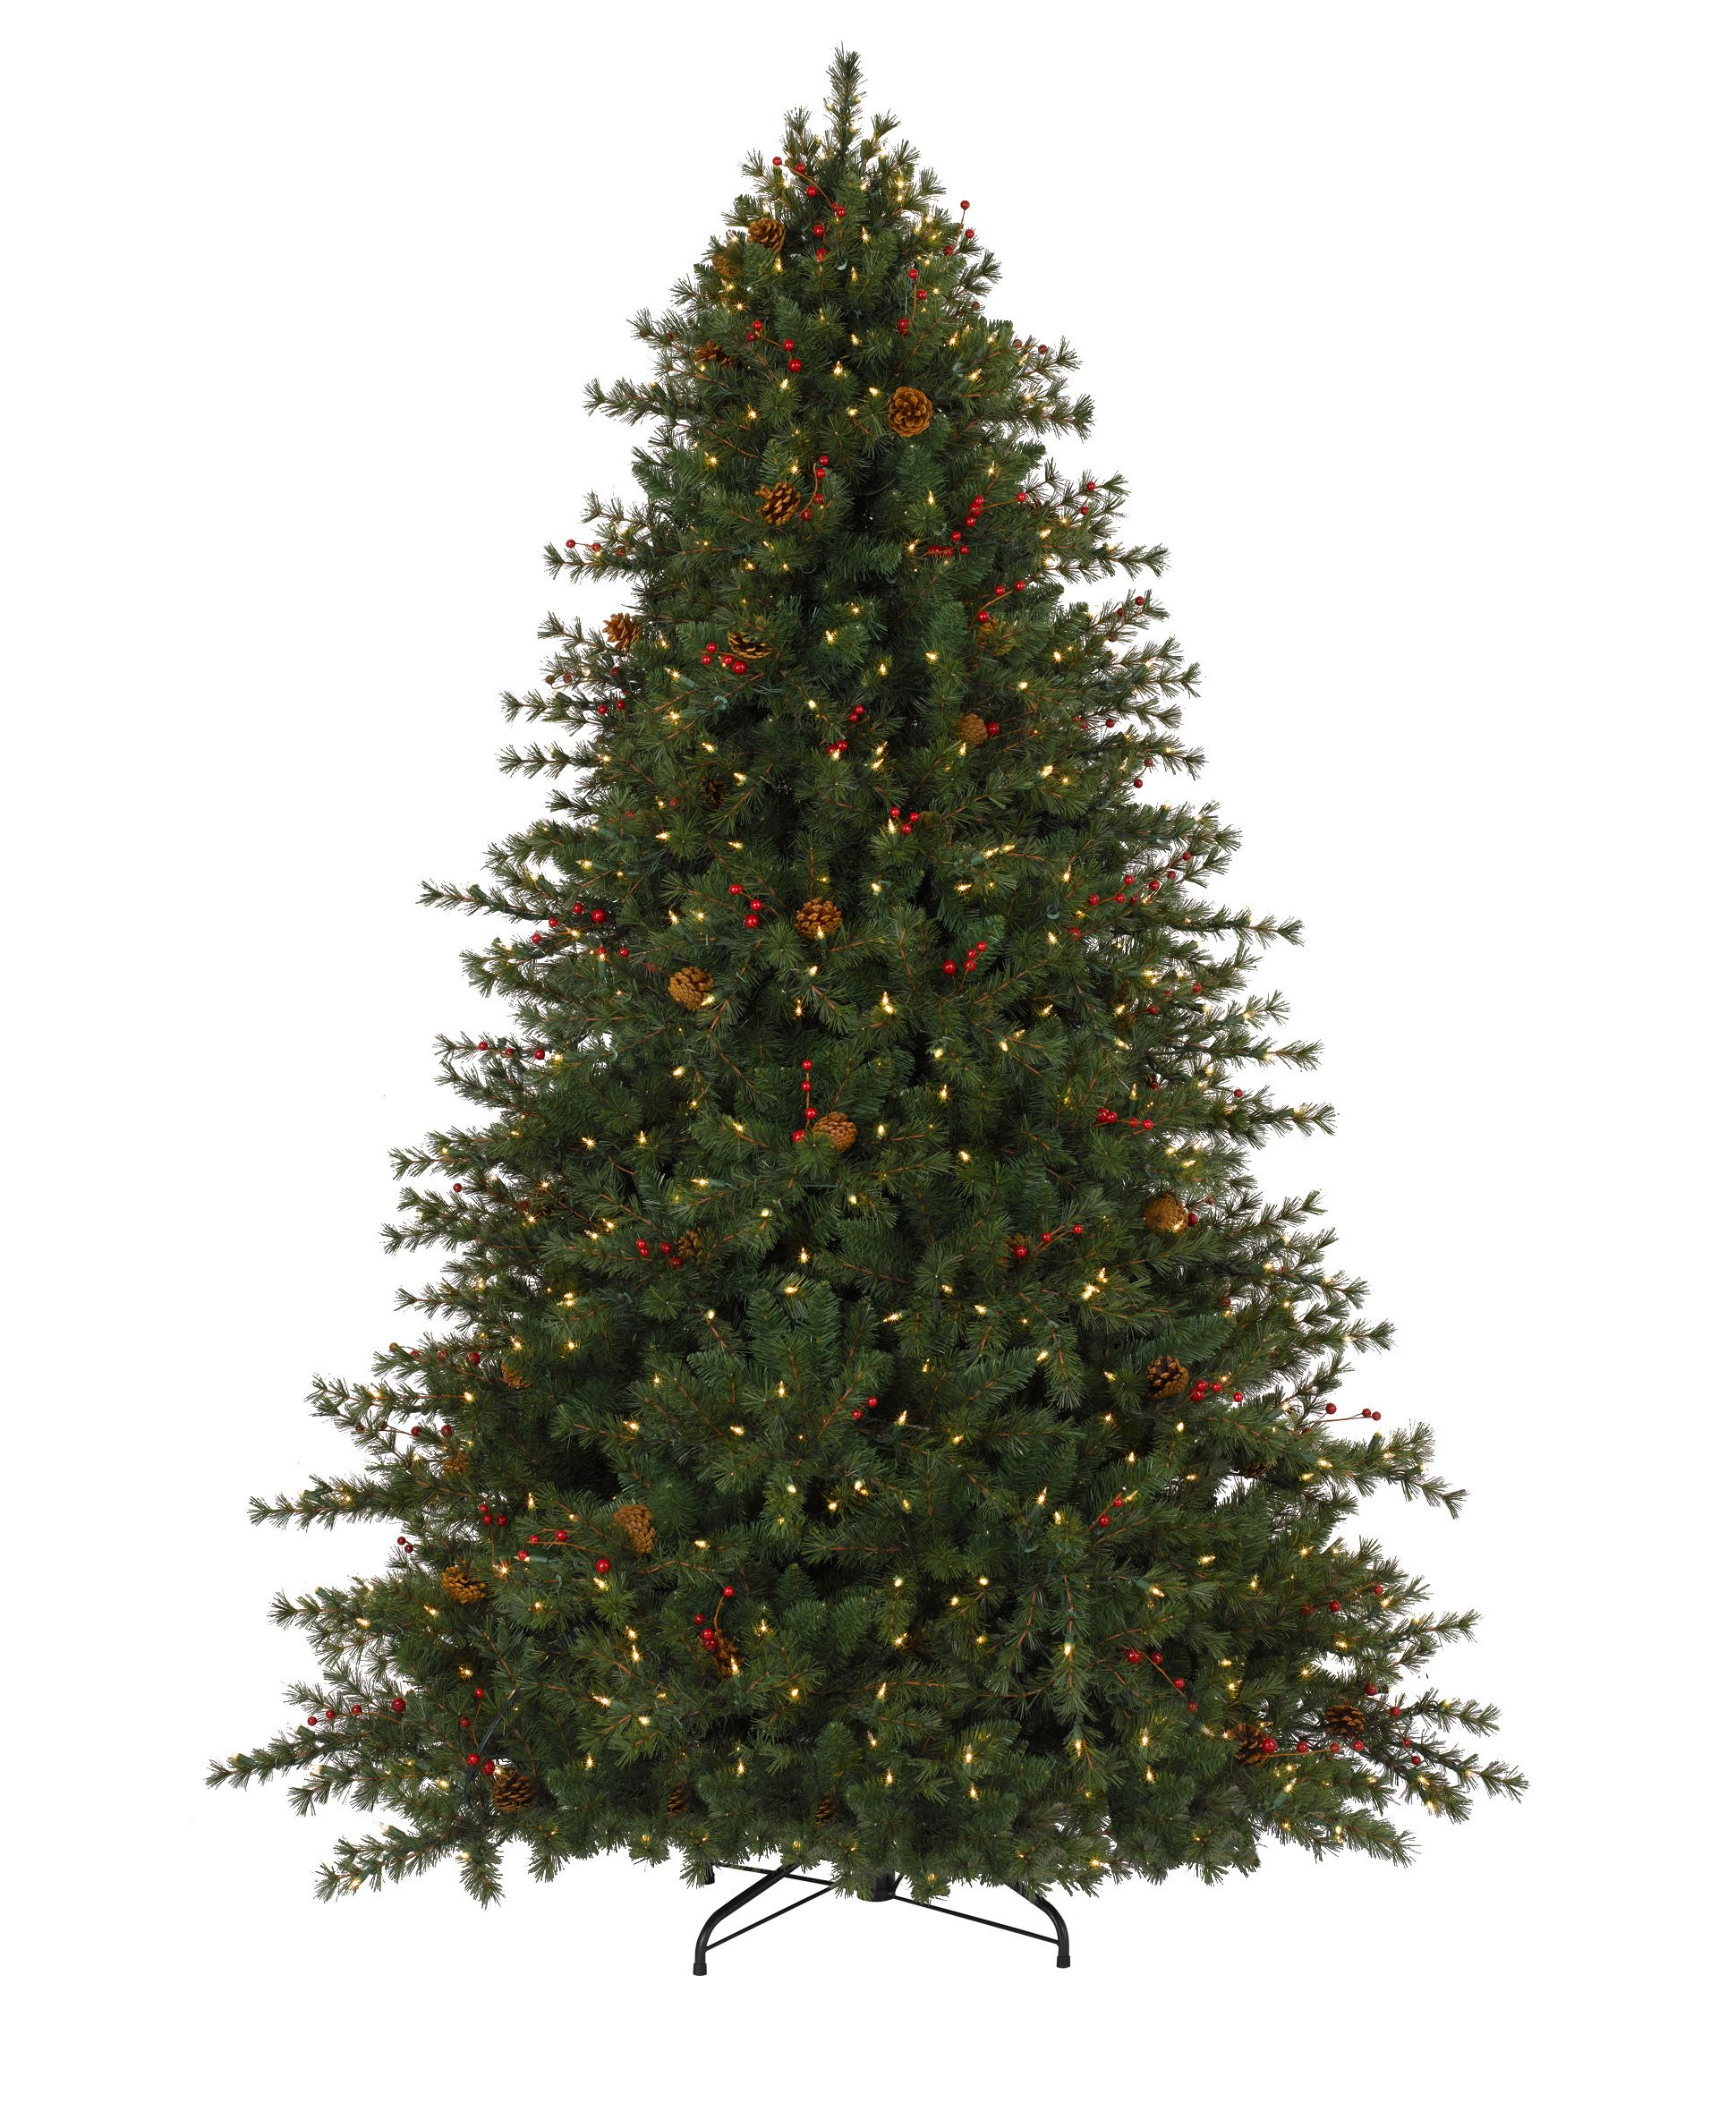 Crestwood small artificial christmas tree with plastic bronze pot - Christmas Tree